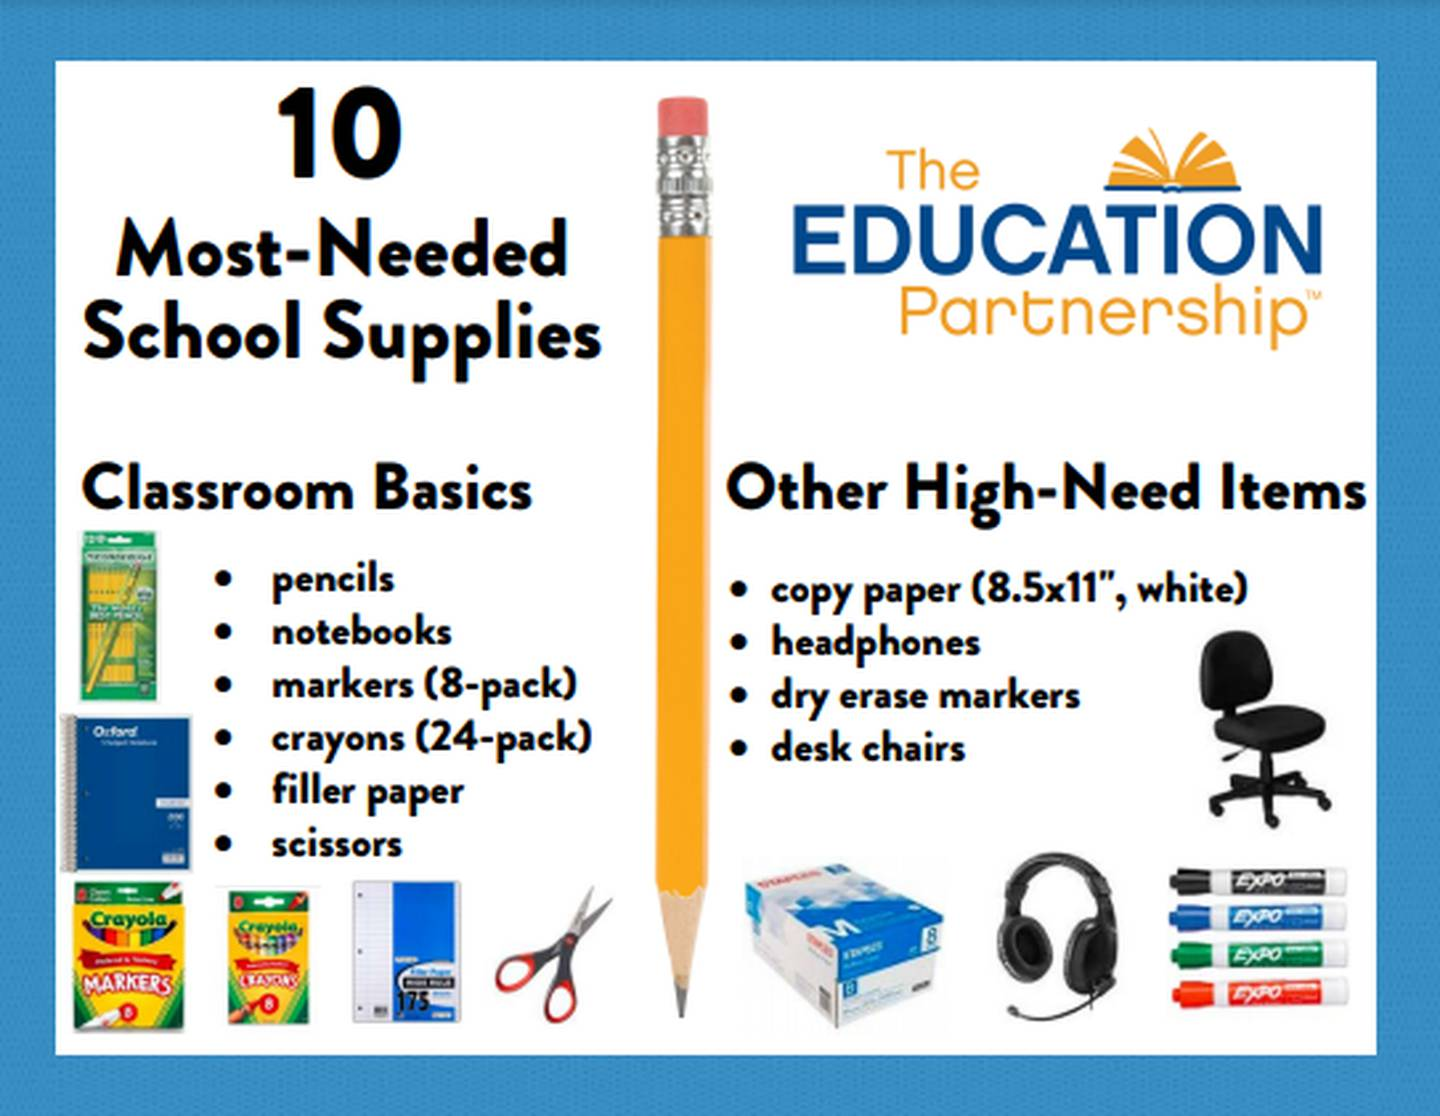 10 most needed school supplies in Pittsburgh